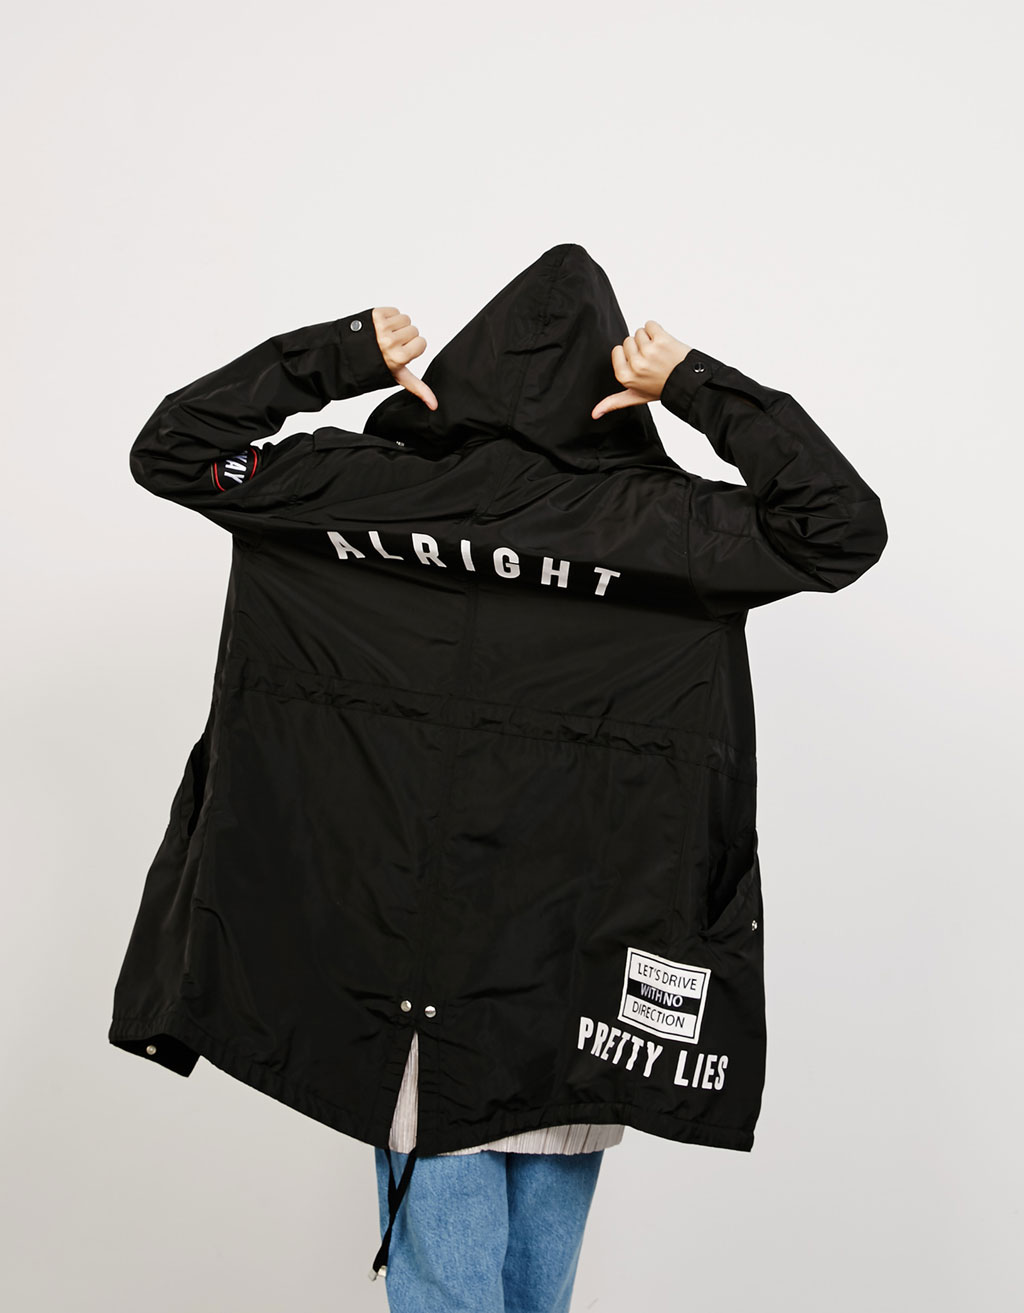 Nylon parka with patches and text